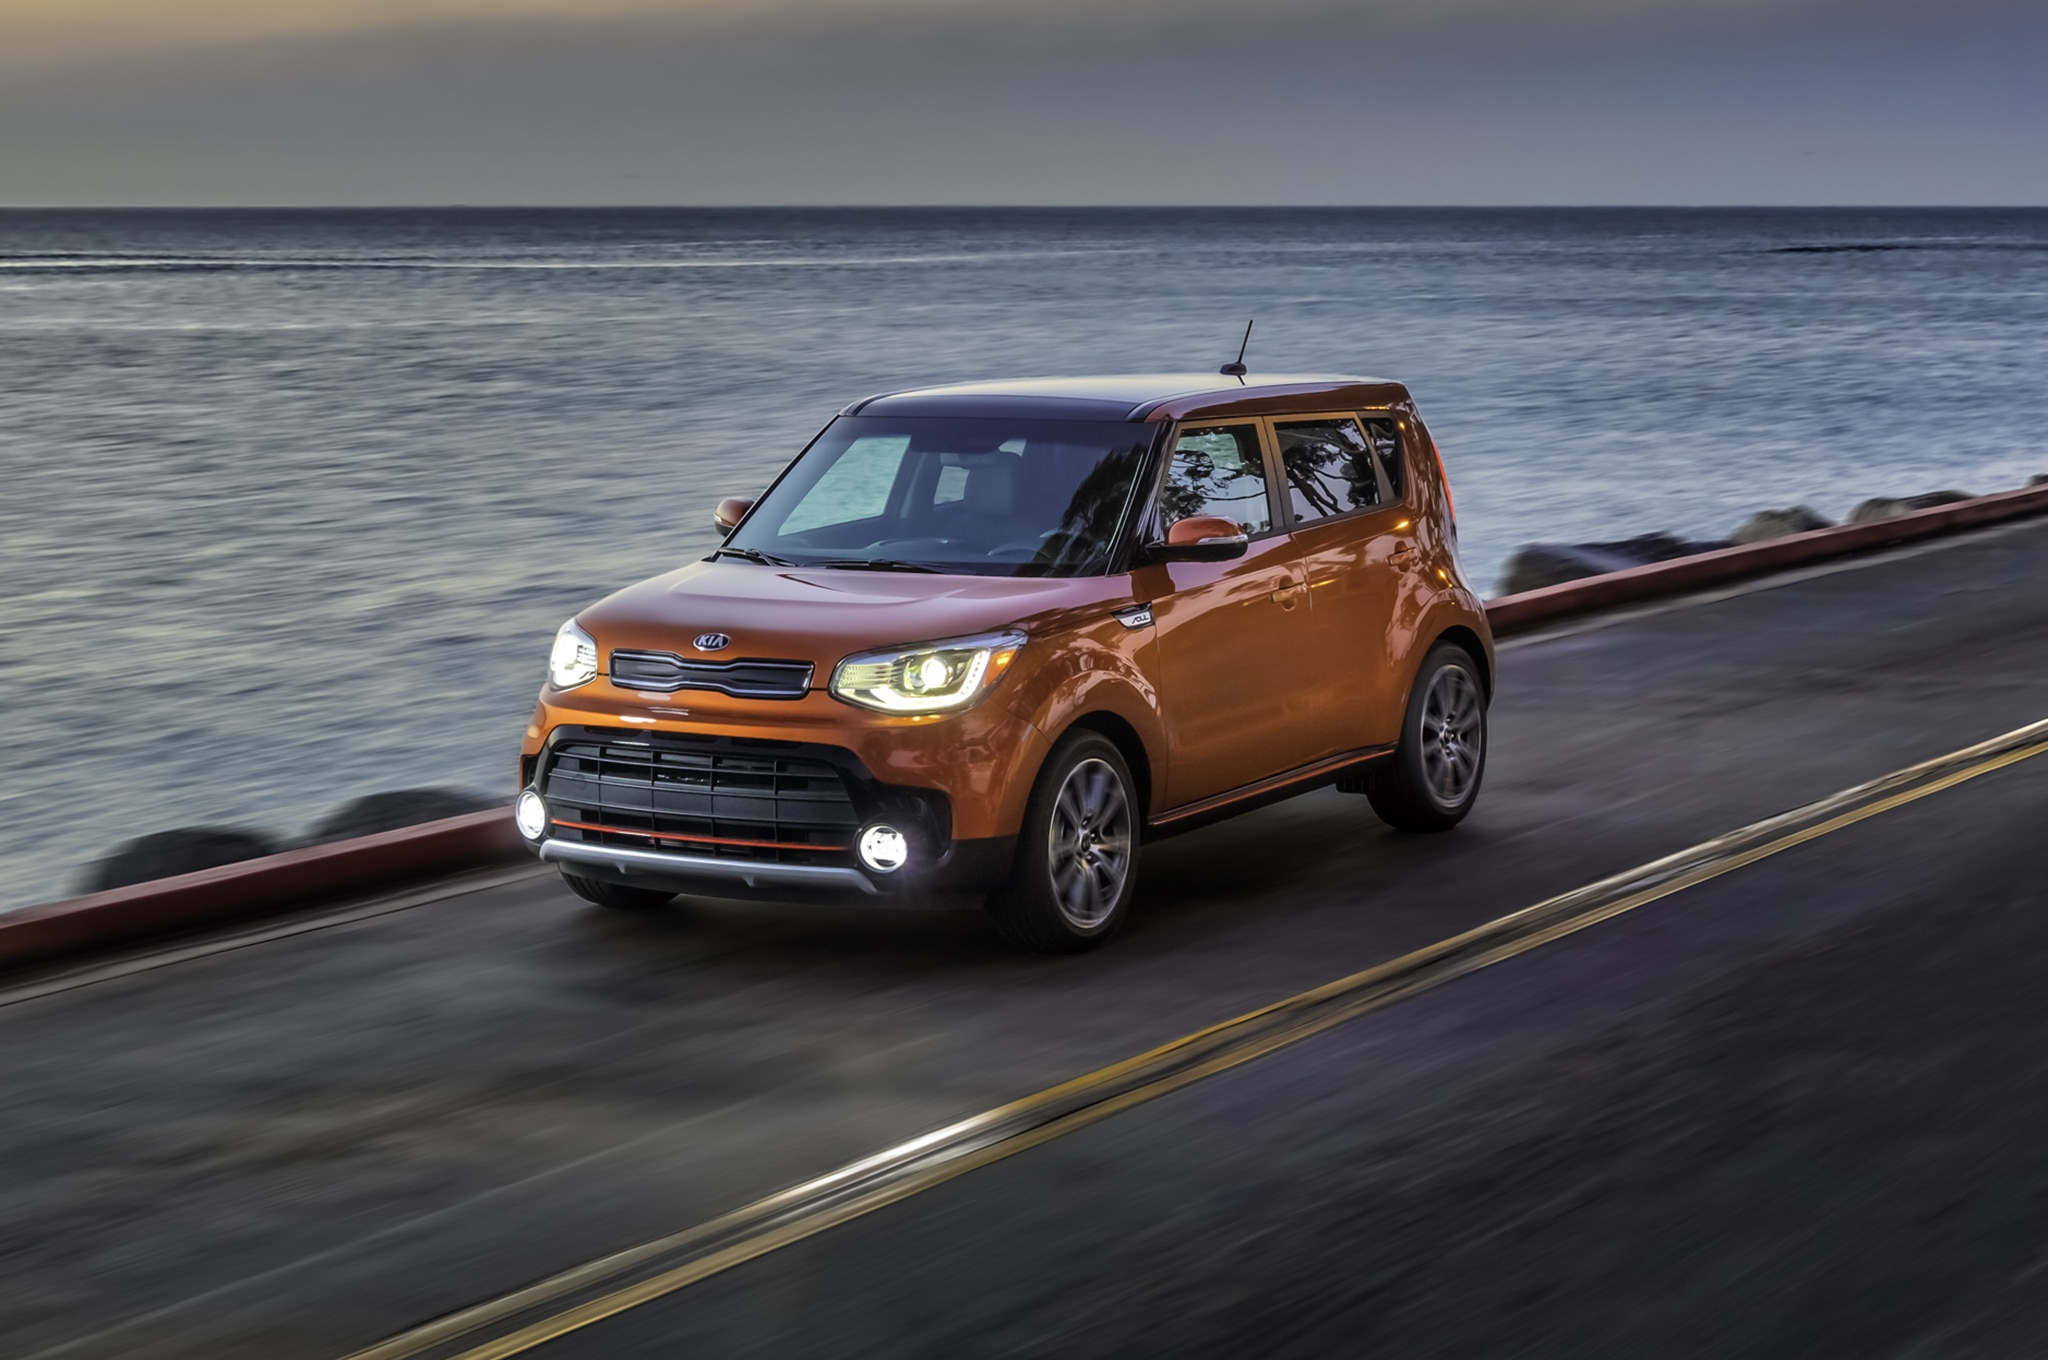 2017 Kia Soul Turbo front three quarter in motion 04